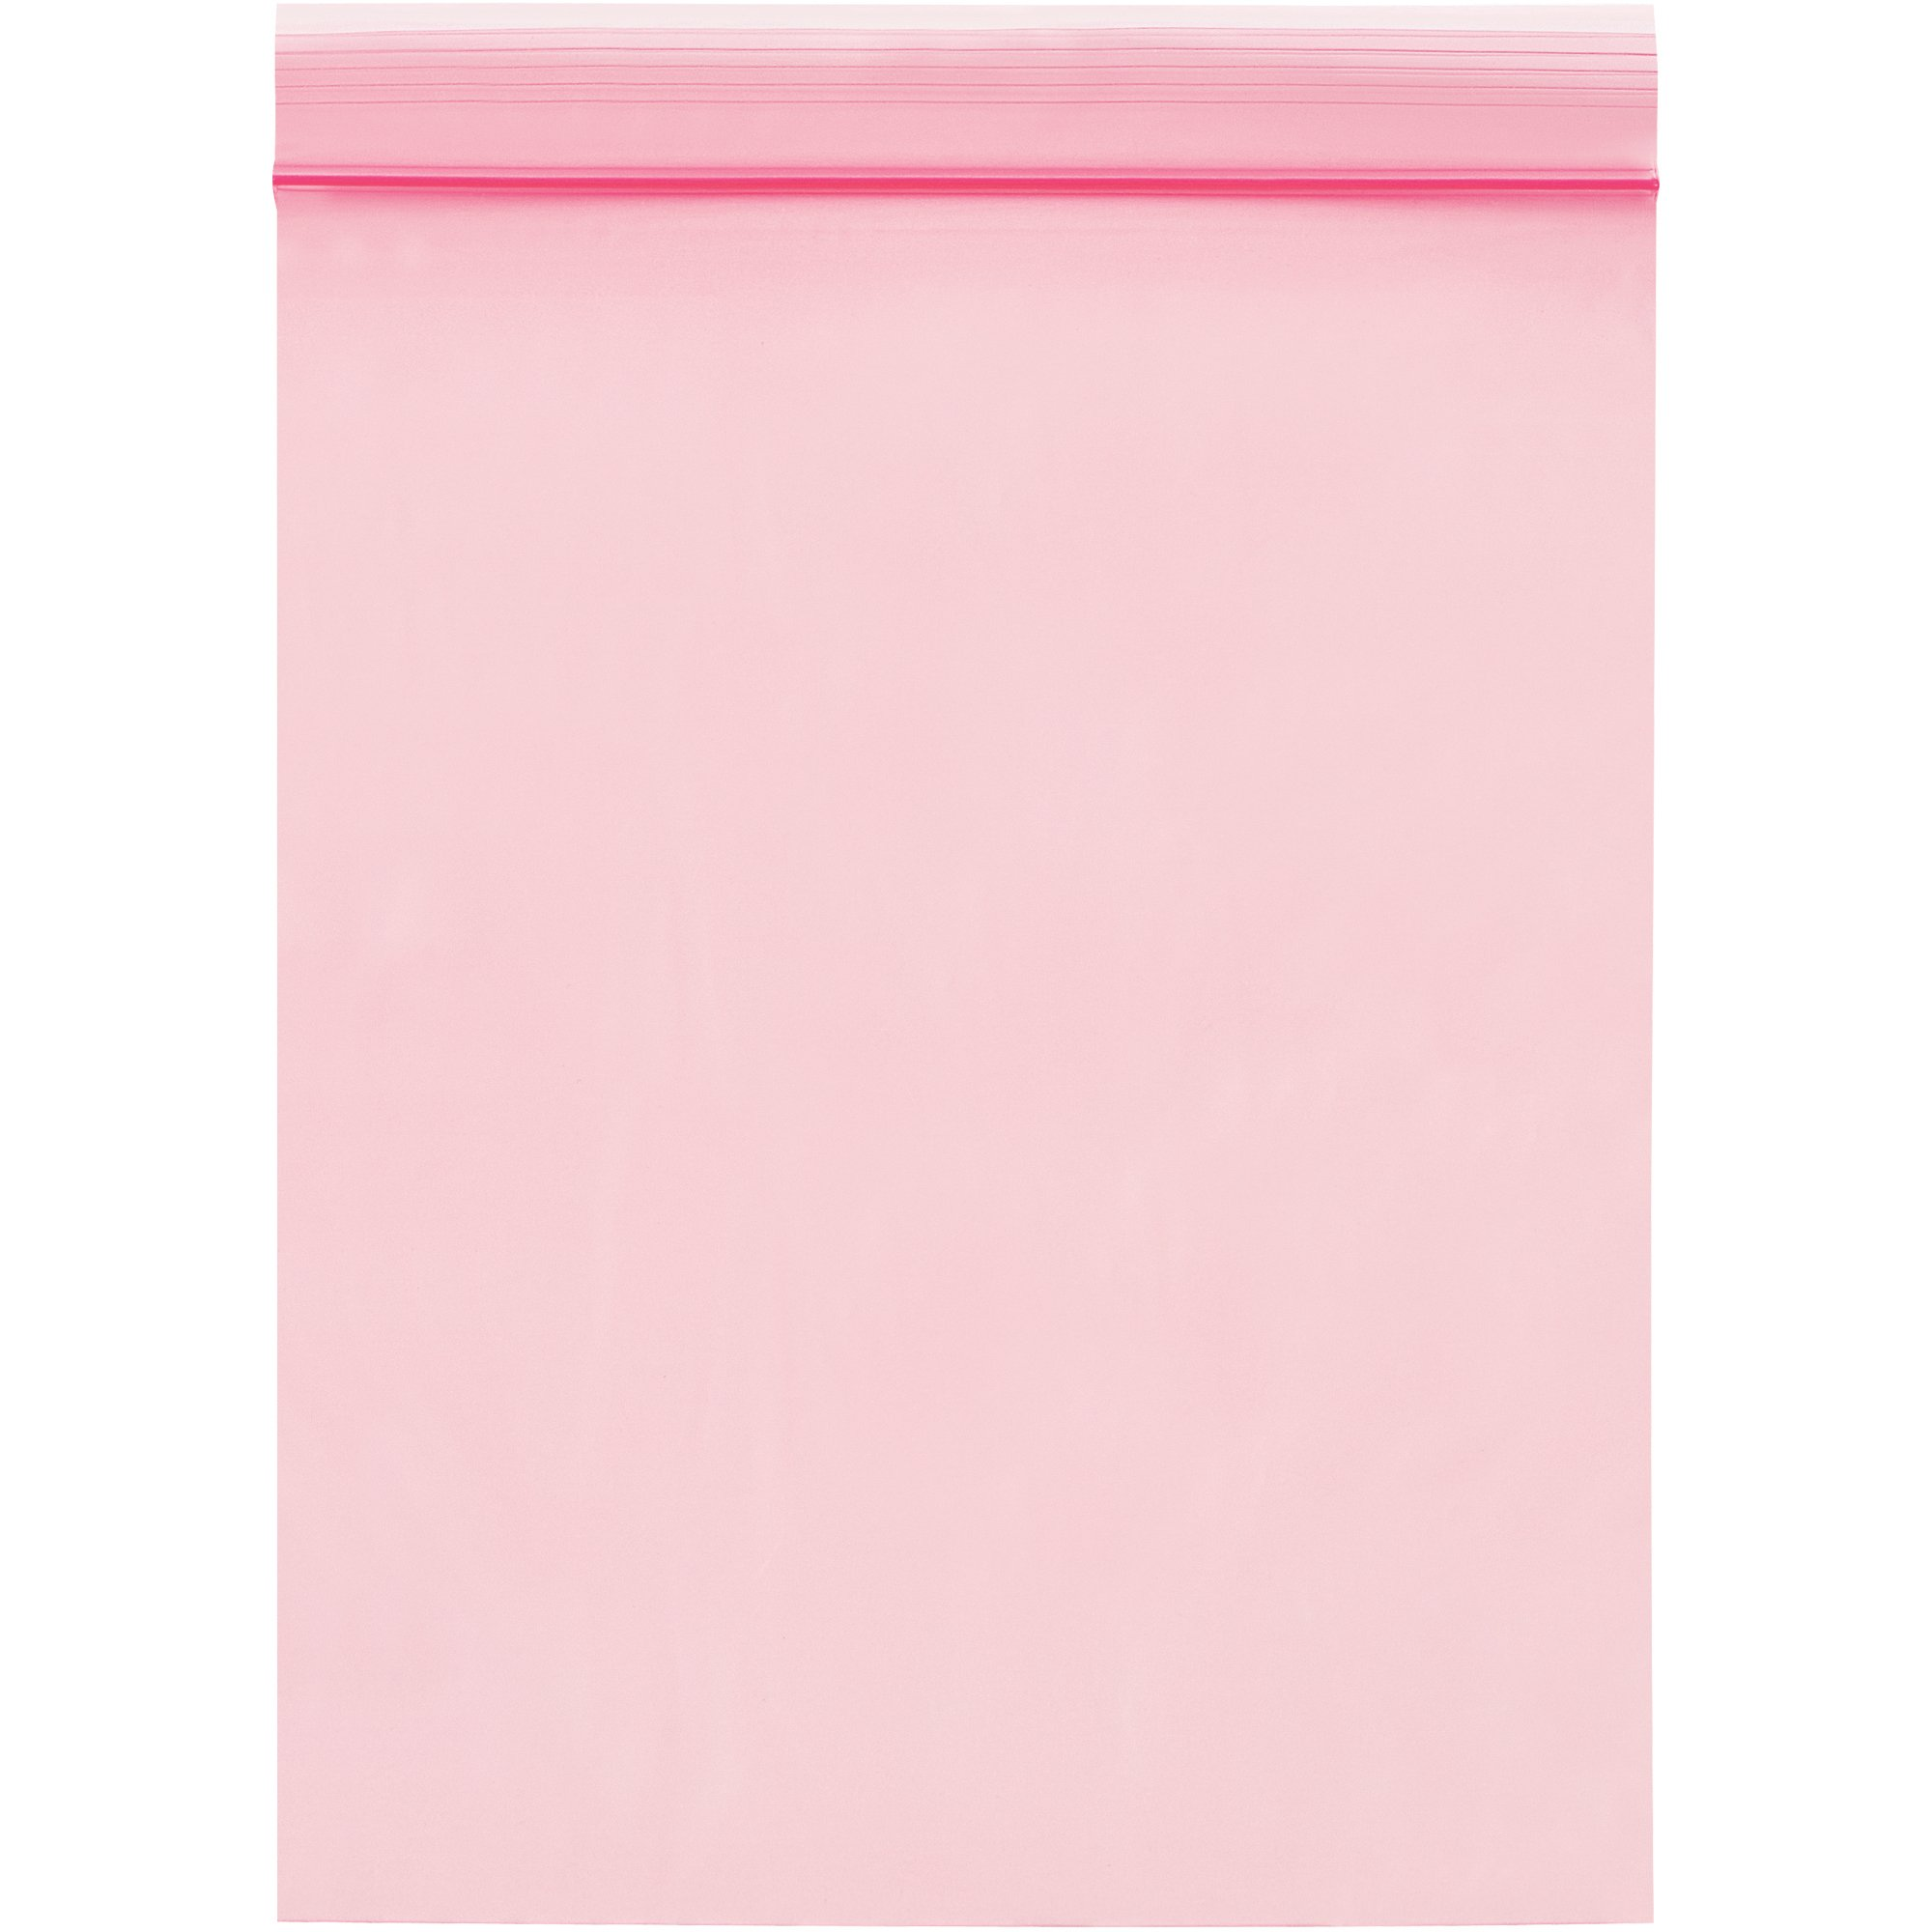 Boxes Fast BFPBAS705 Anti-Static 2 Mil Reclosable Poly Bags, 3'' x 5'', Pink (Pack of 1000)